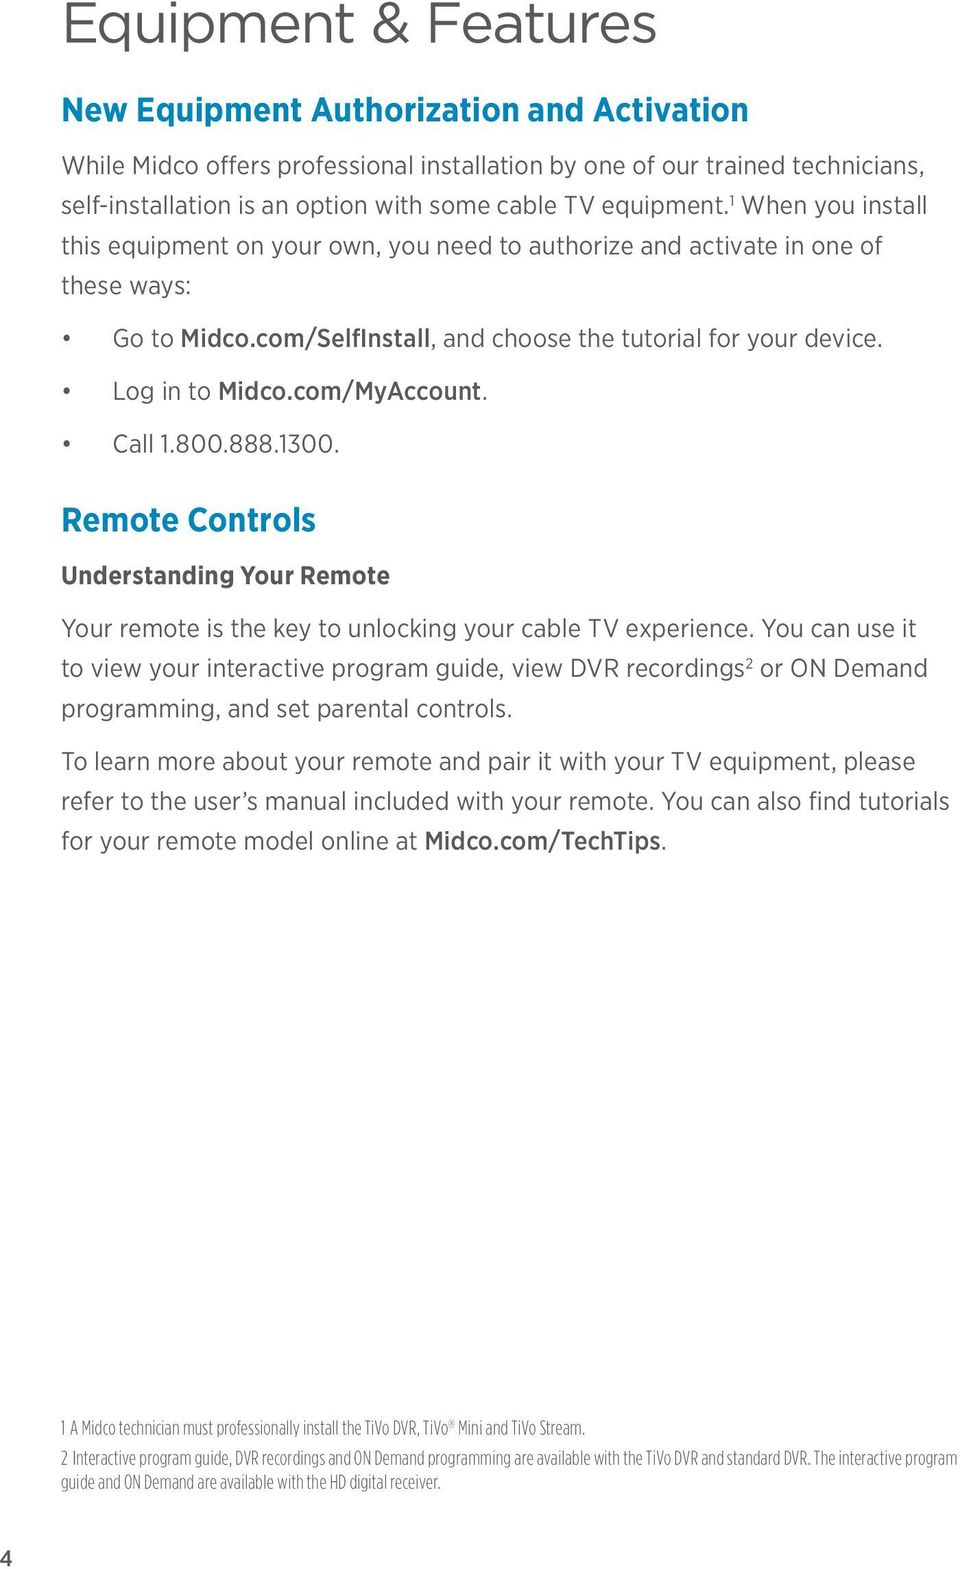 Cable TV Quick Start Guide  Enjoy your Midco cable TV